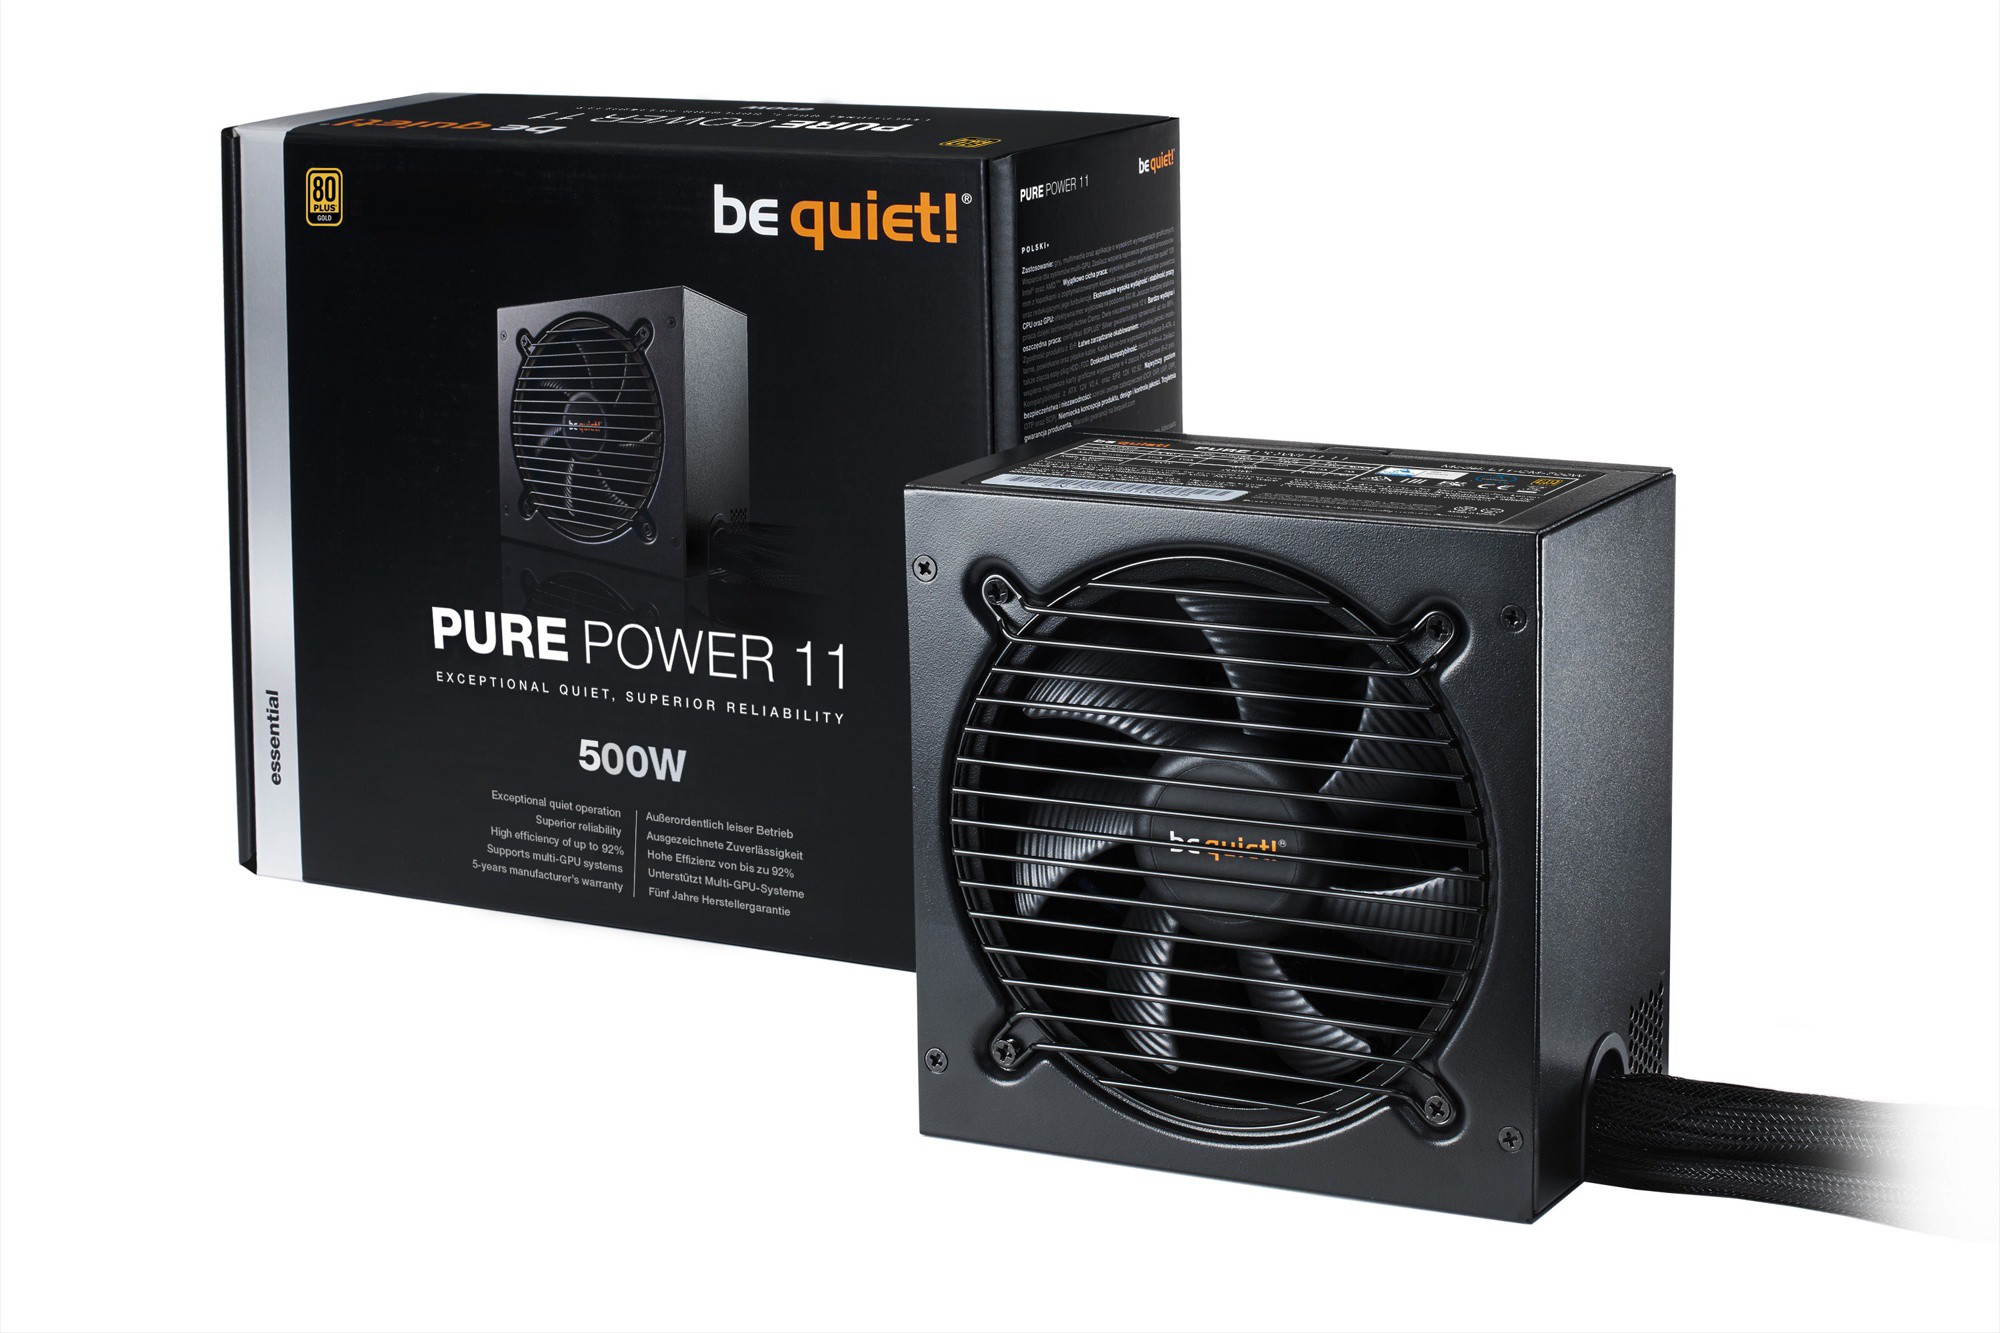 Блок питания 500W be quiet! Pure Power 11 (BN293) (120мм, 24+8pin, 2x6/8pin, 3xMolex, 6xSATA, 80+ Gold)